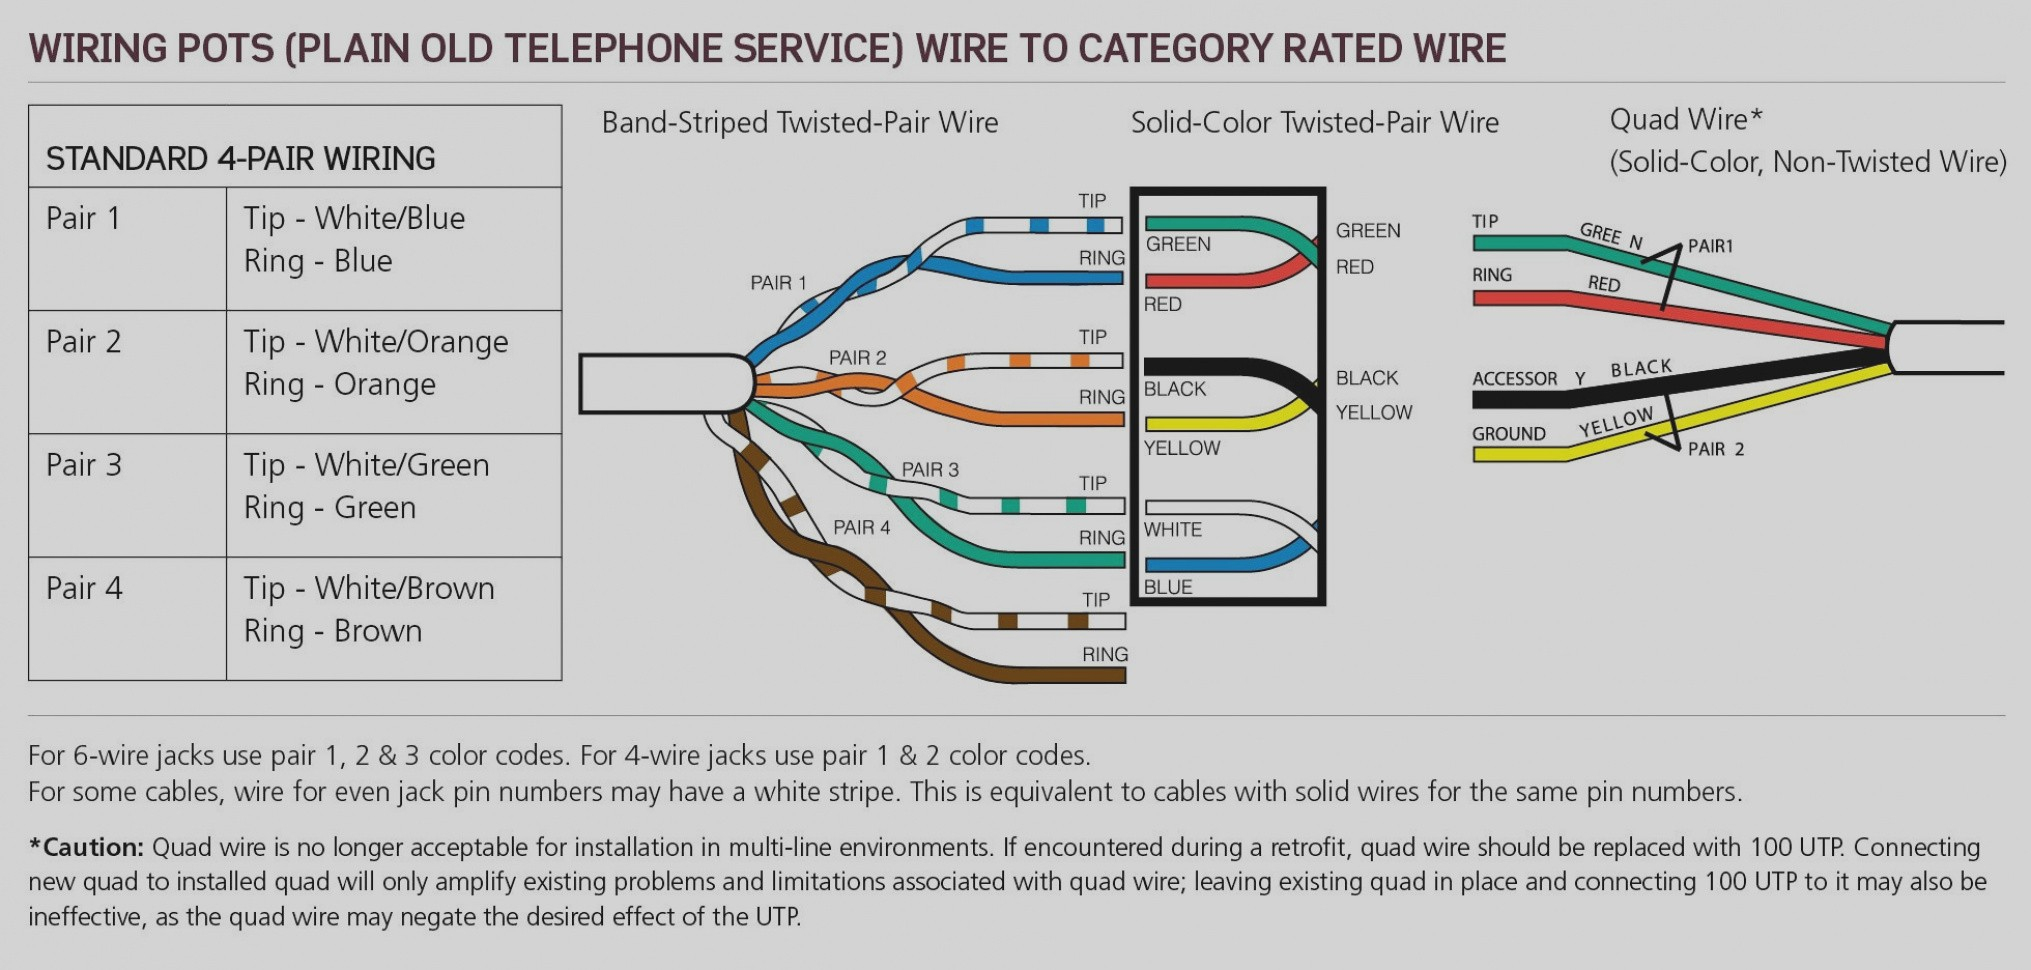 Telephone Line Wiring Diagram - Wiring Diagrams Hubs - Aux Cord Wiring Diagram